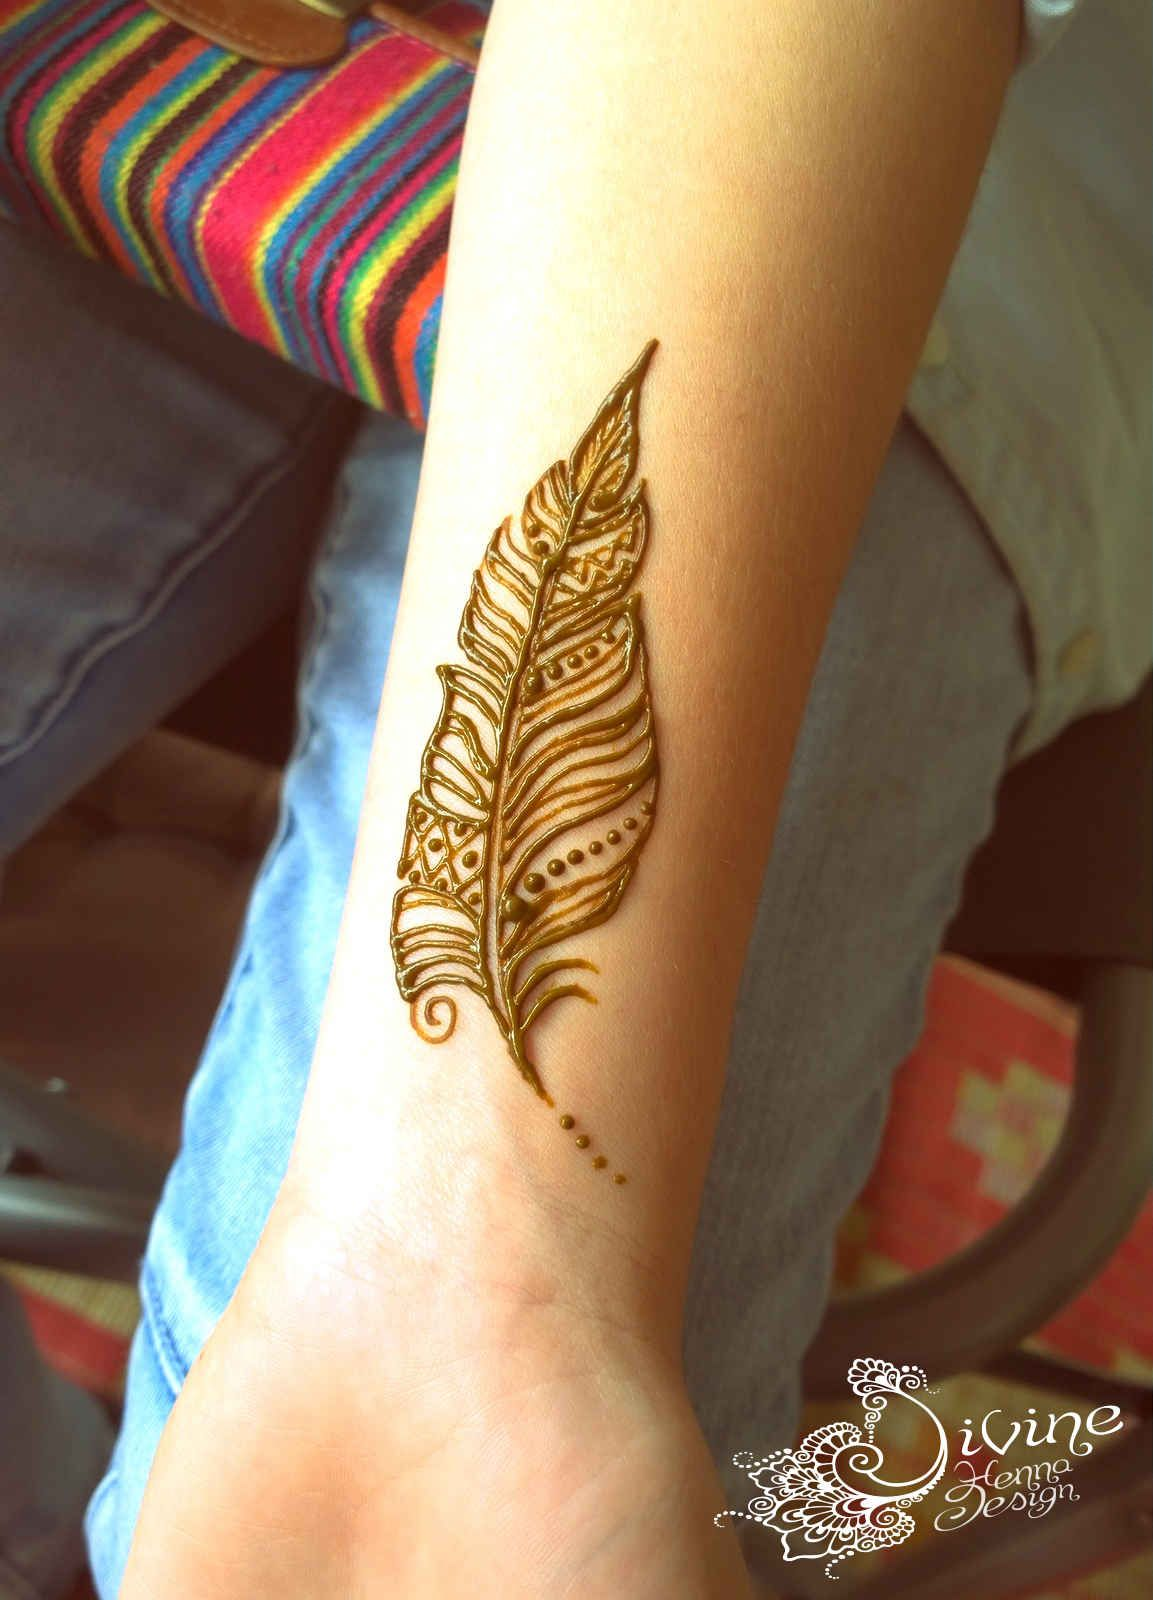 Feather Henna Tattoo Designs: Henna Feather Design - Google Search